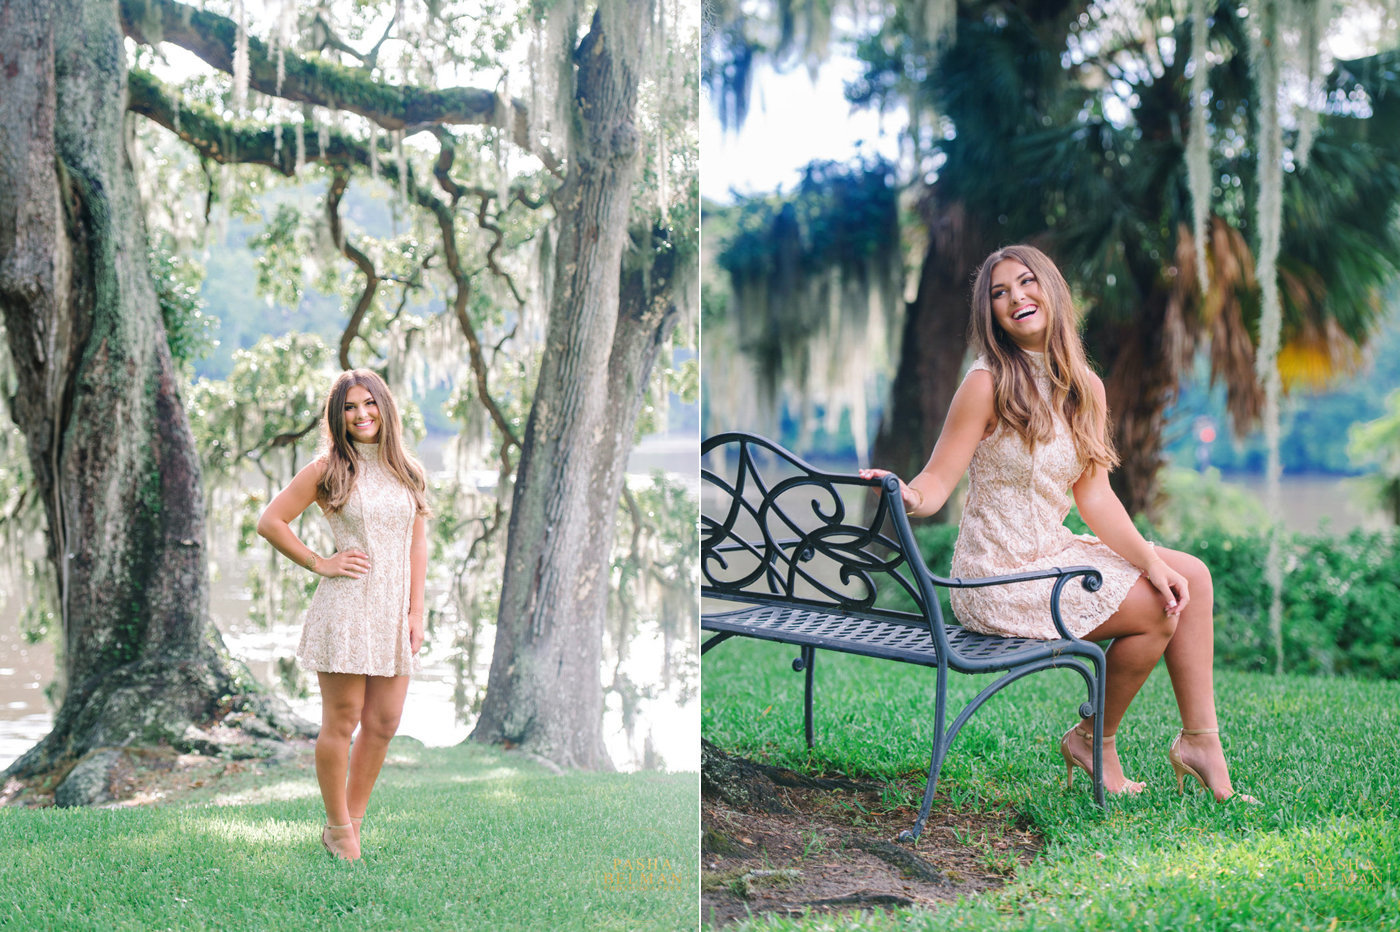 Senior Pictures | High School Senior Photography Ideas for Girls in Charleston SC and Wilmington NC | High School Senior Pictures by top Myrtle Beach Senior Photographers